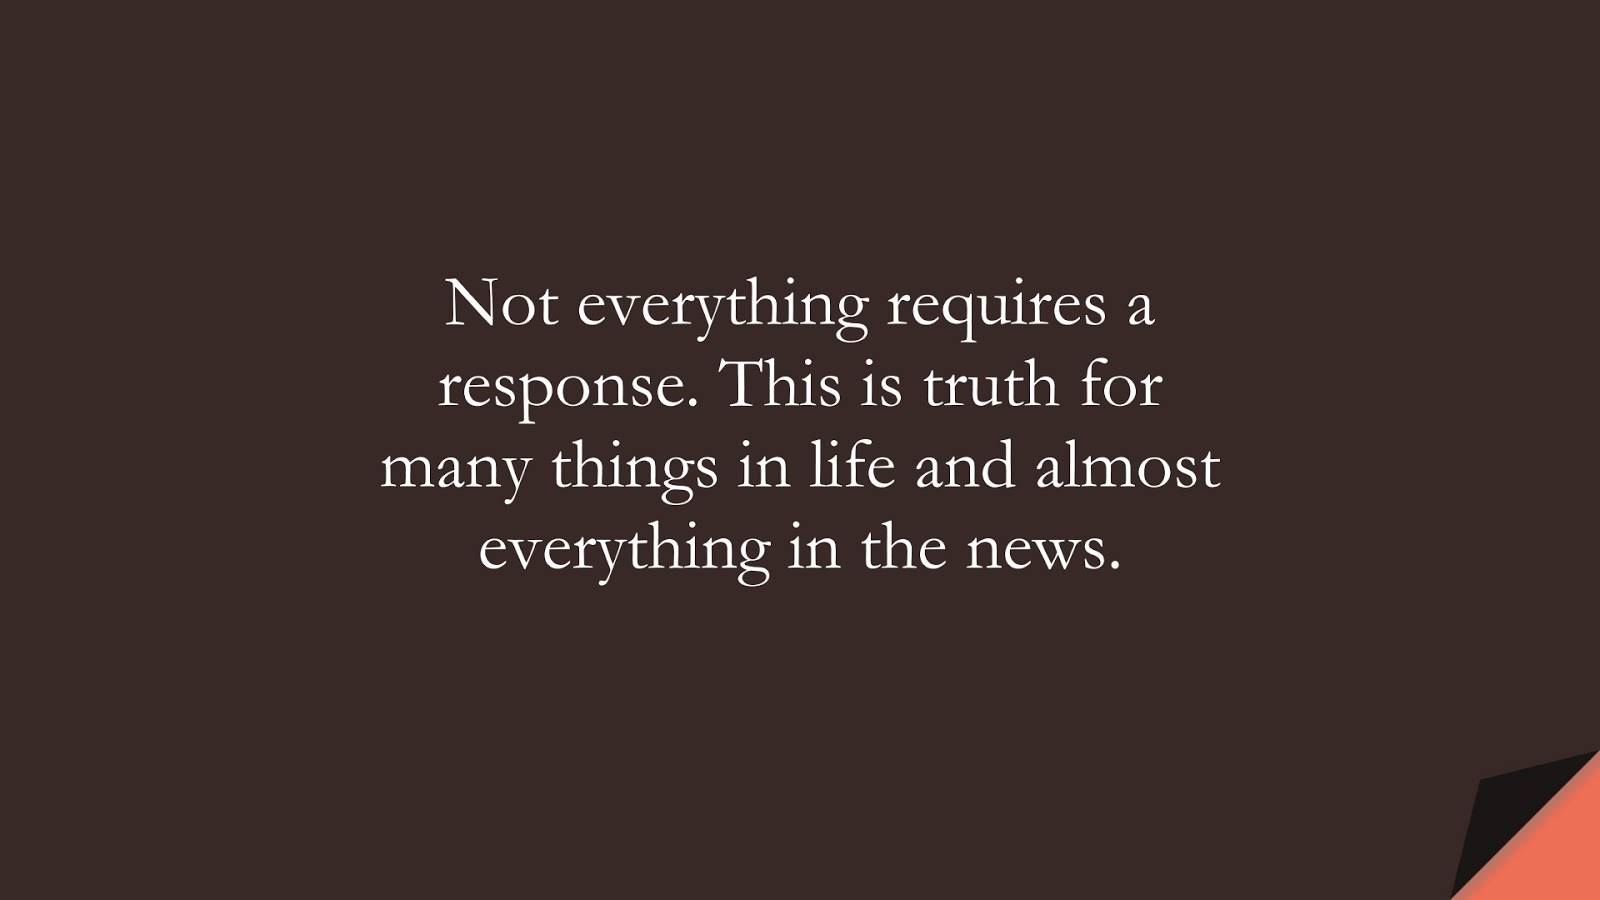 Not everything requires a response. This is truth for many things in life and almost everything in the news.FALSE